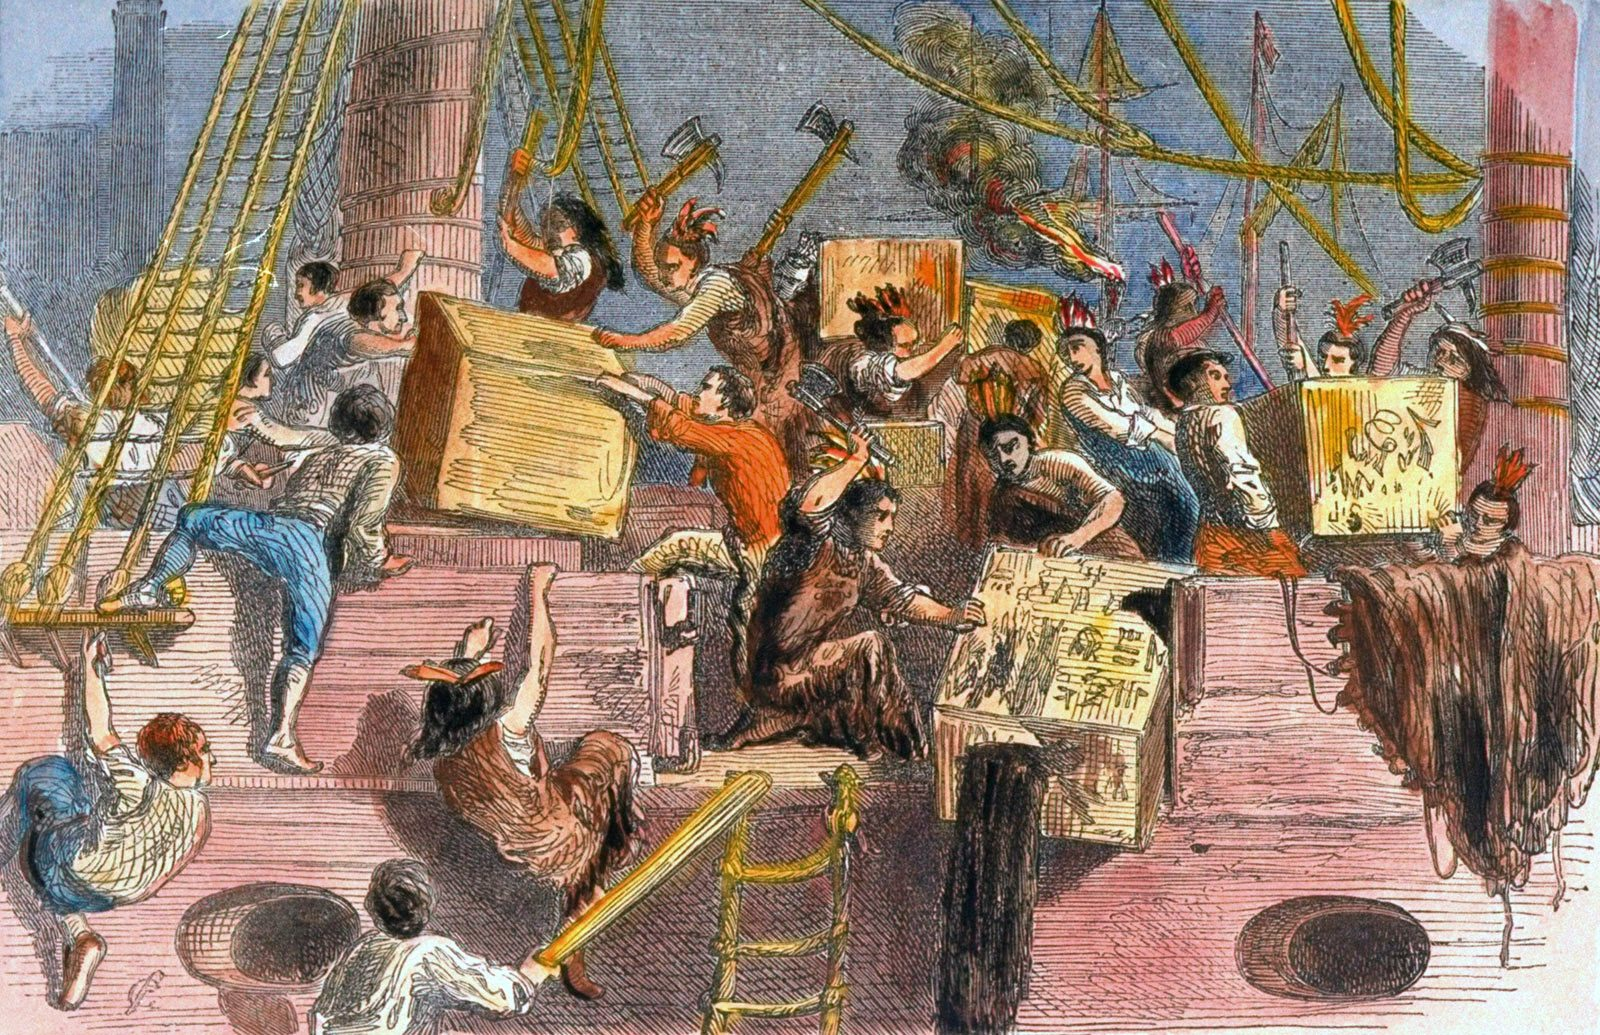 The Boston Tea Party monitored another prerevolutionary occasion called the Boston Massacre that occurred on March 5, 1770.